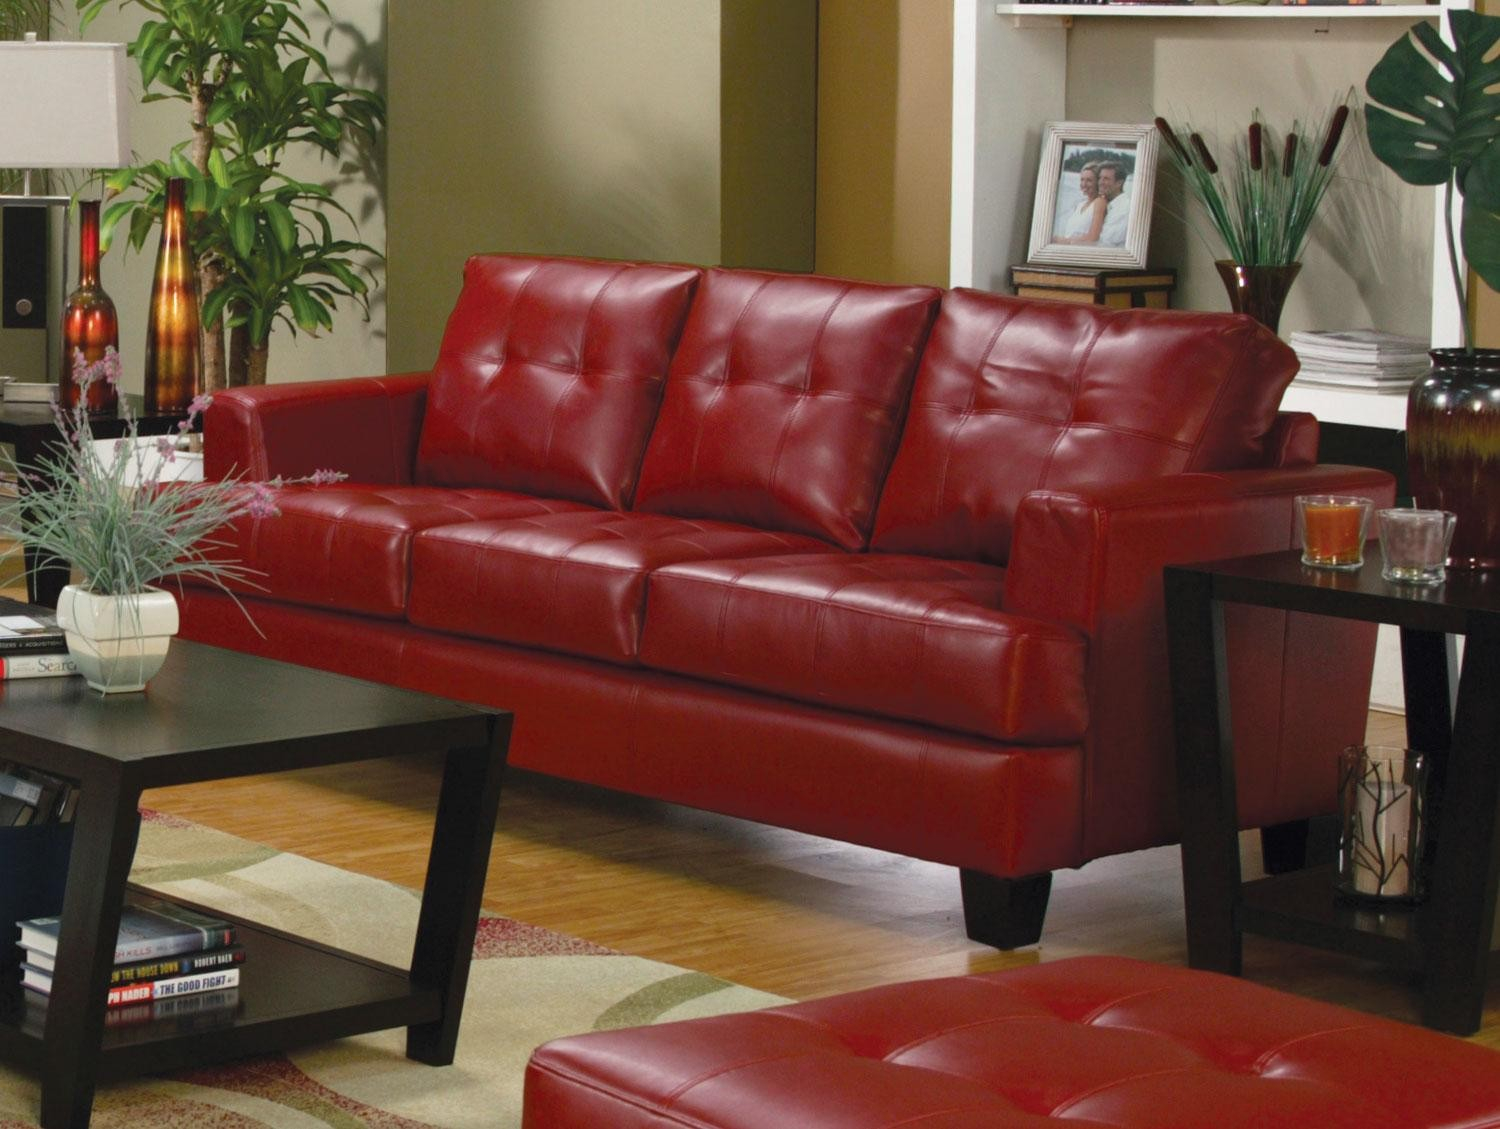 Samuel Red Leather Living Room Collection From Coaster Furniture 358955 358956 358957 358958